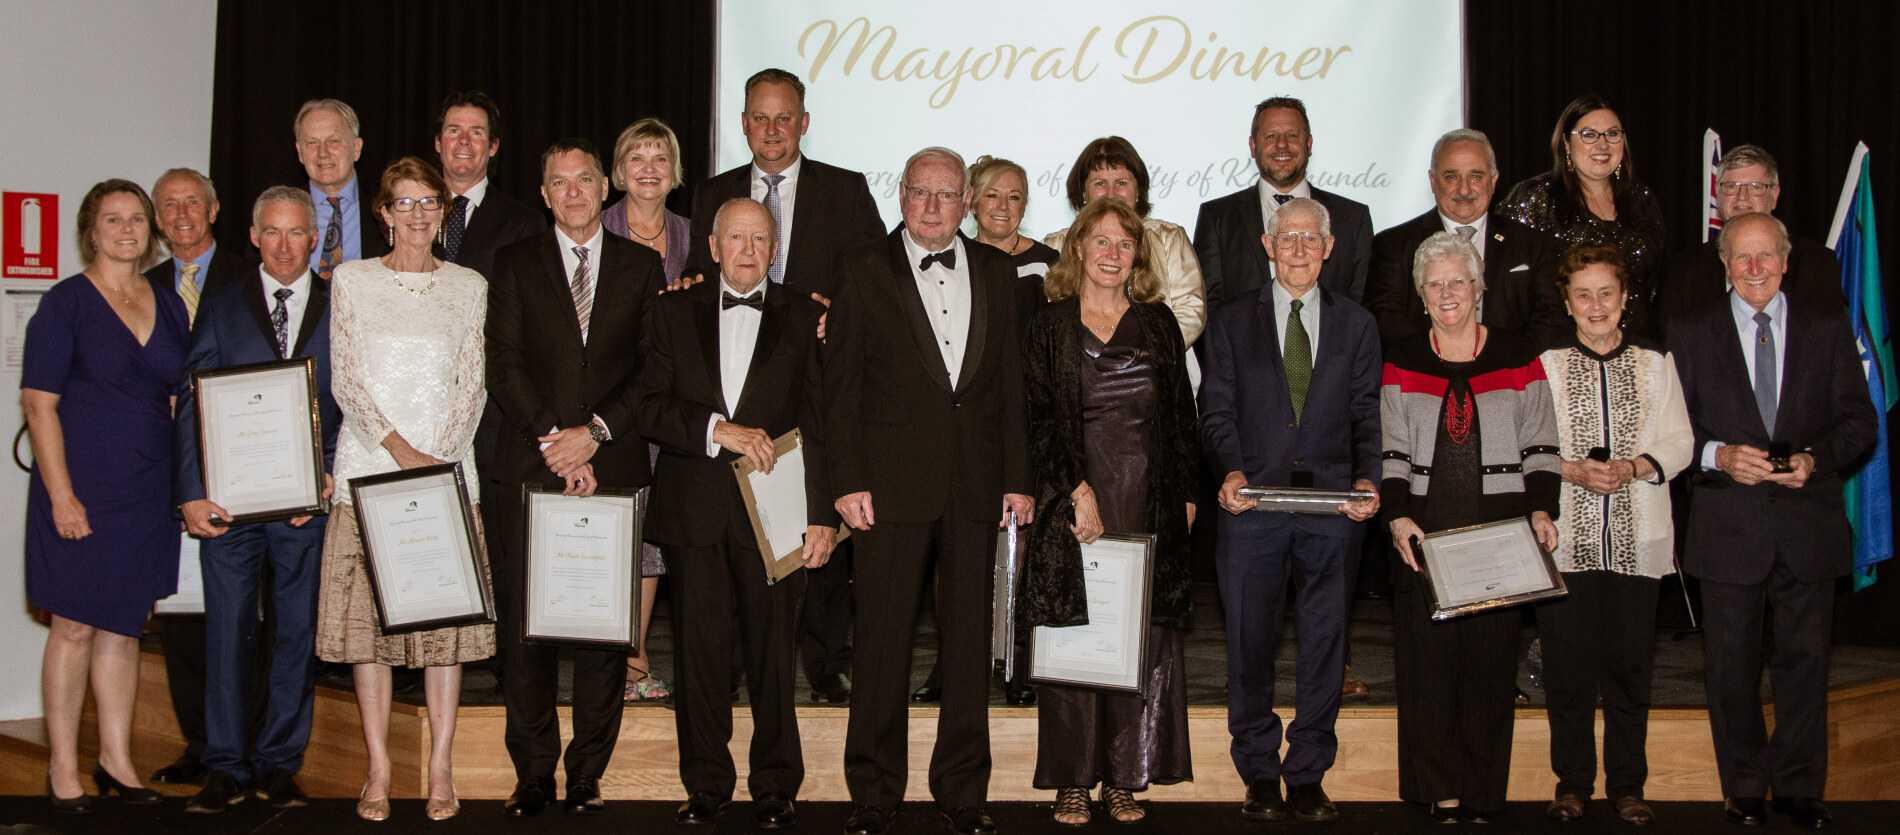 Freemans Awards - Mayor Dinner 2019